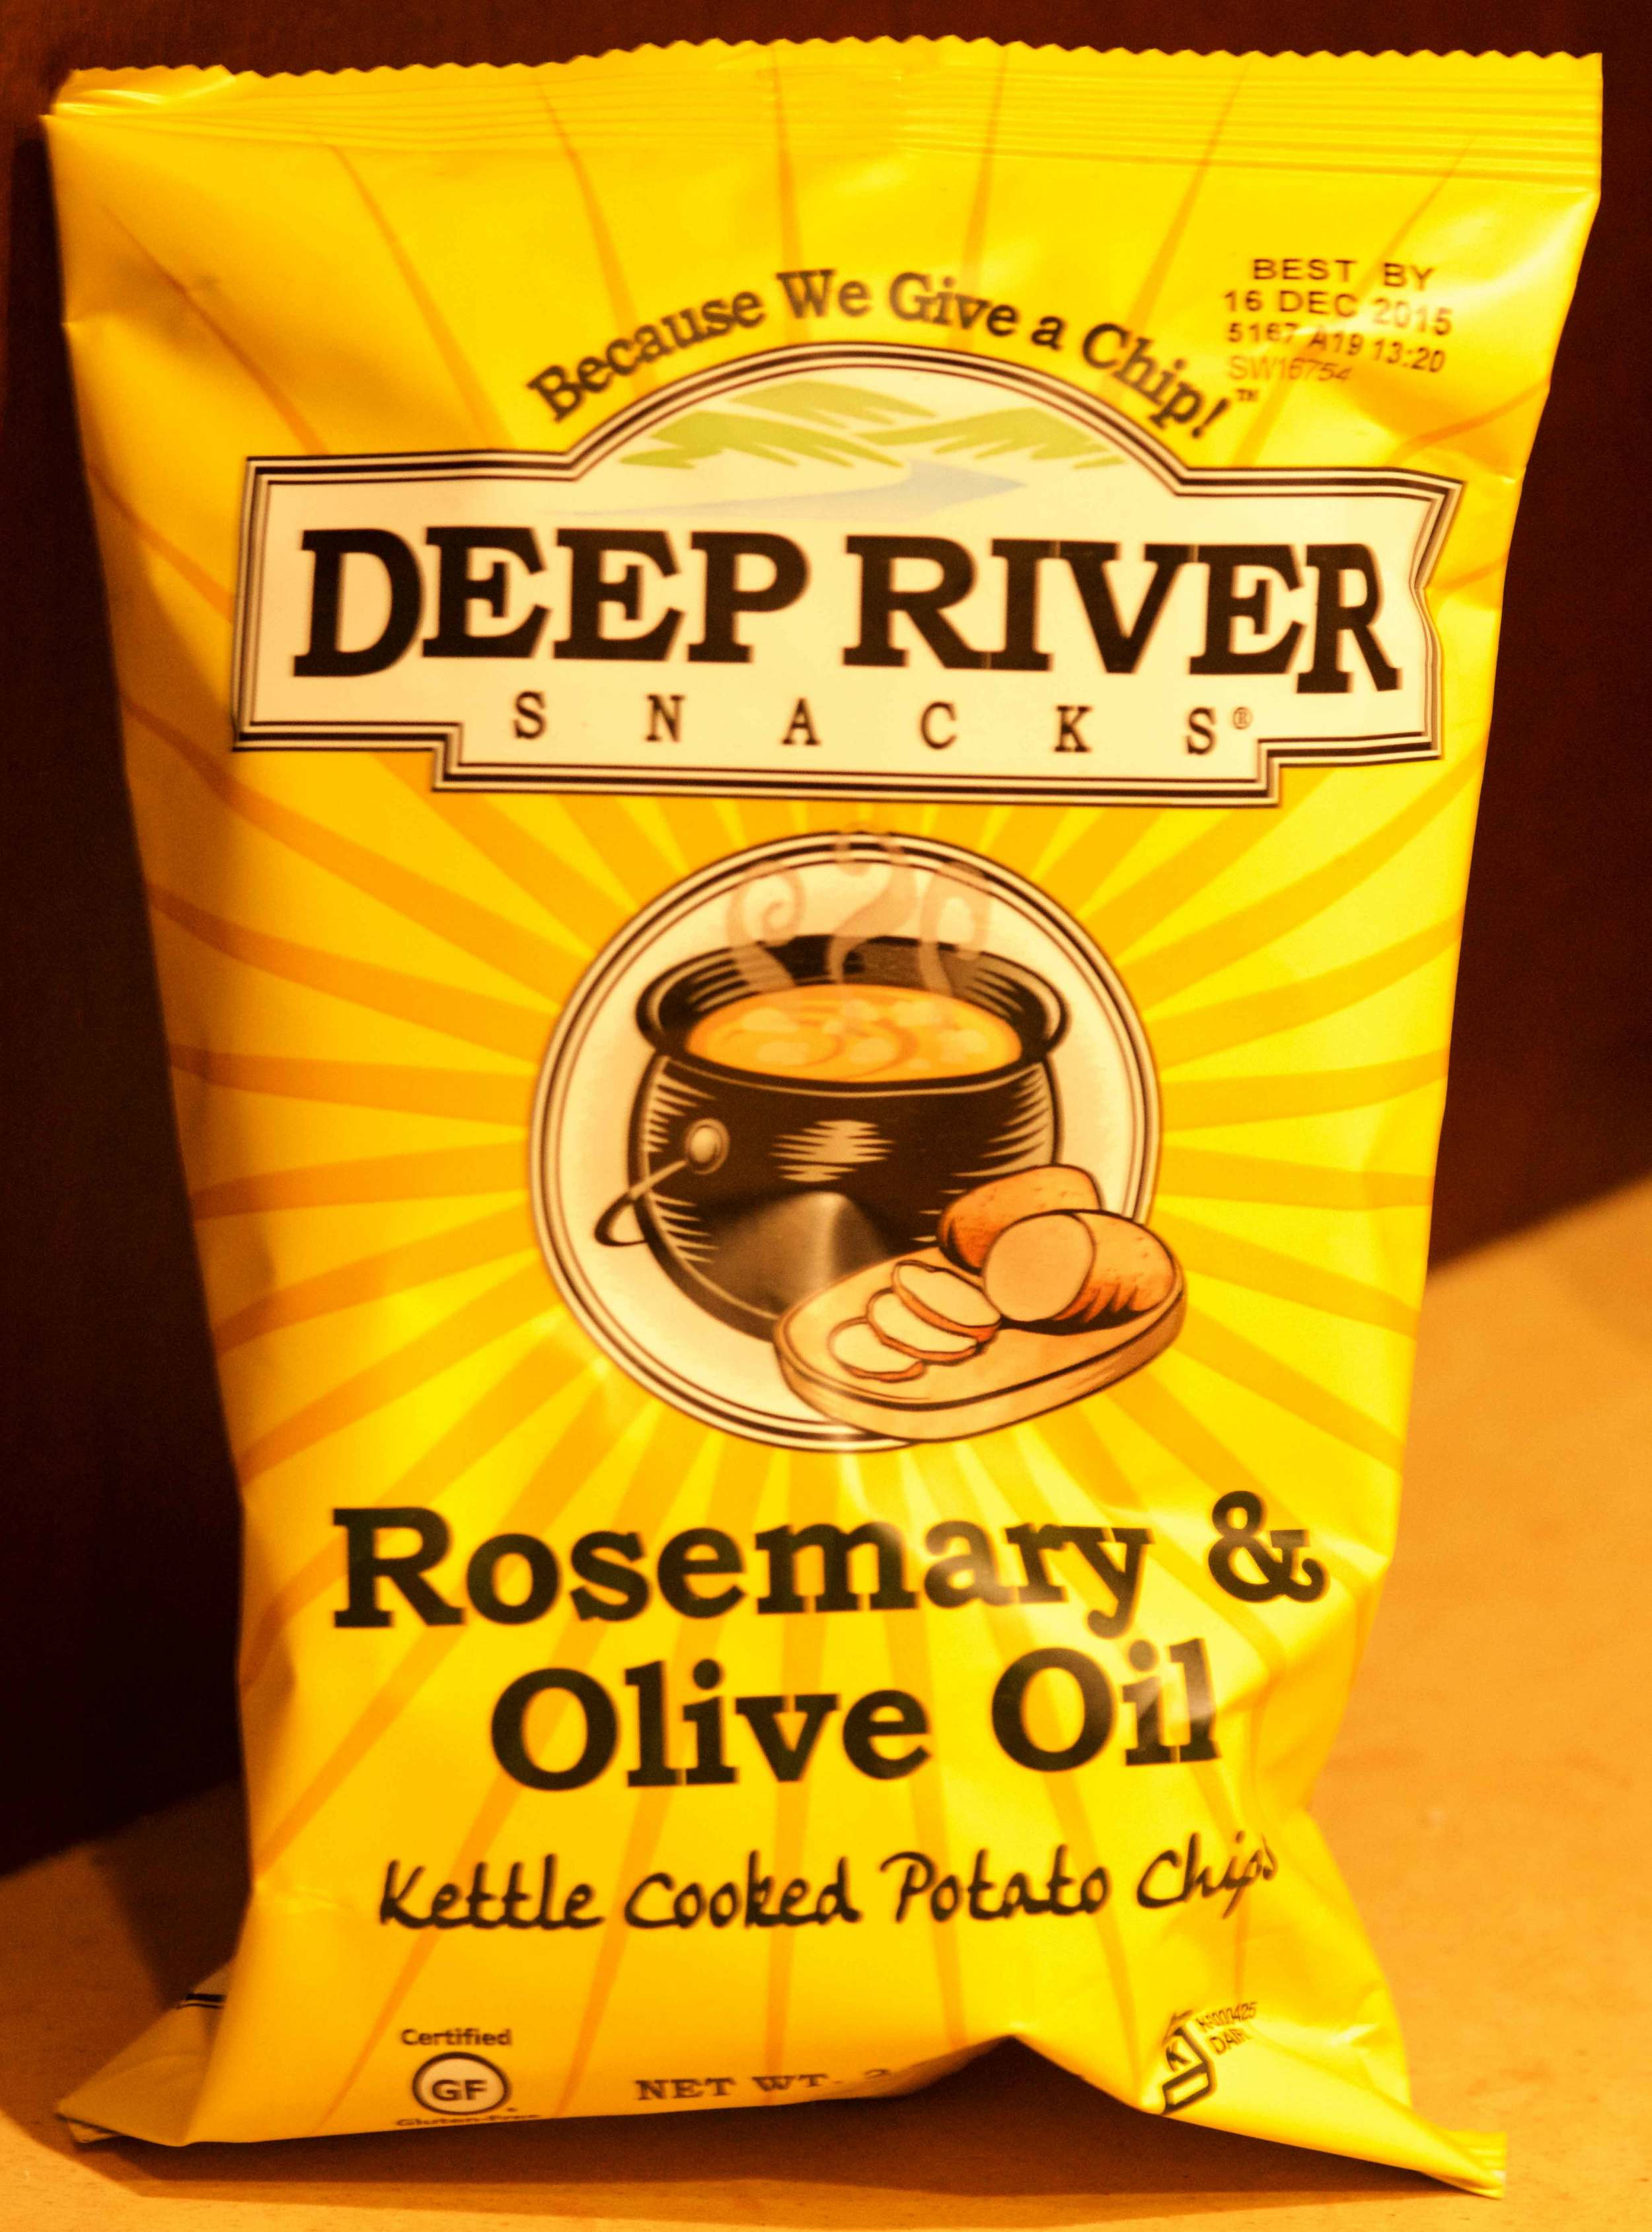 Kettle cooked potato chips from Deep River. Image©gunjanvirk